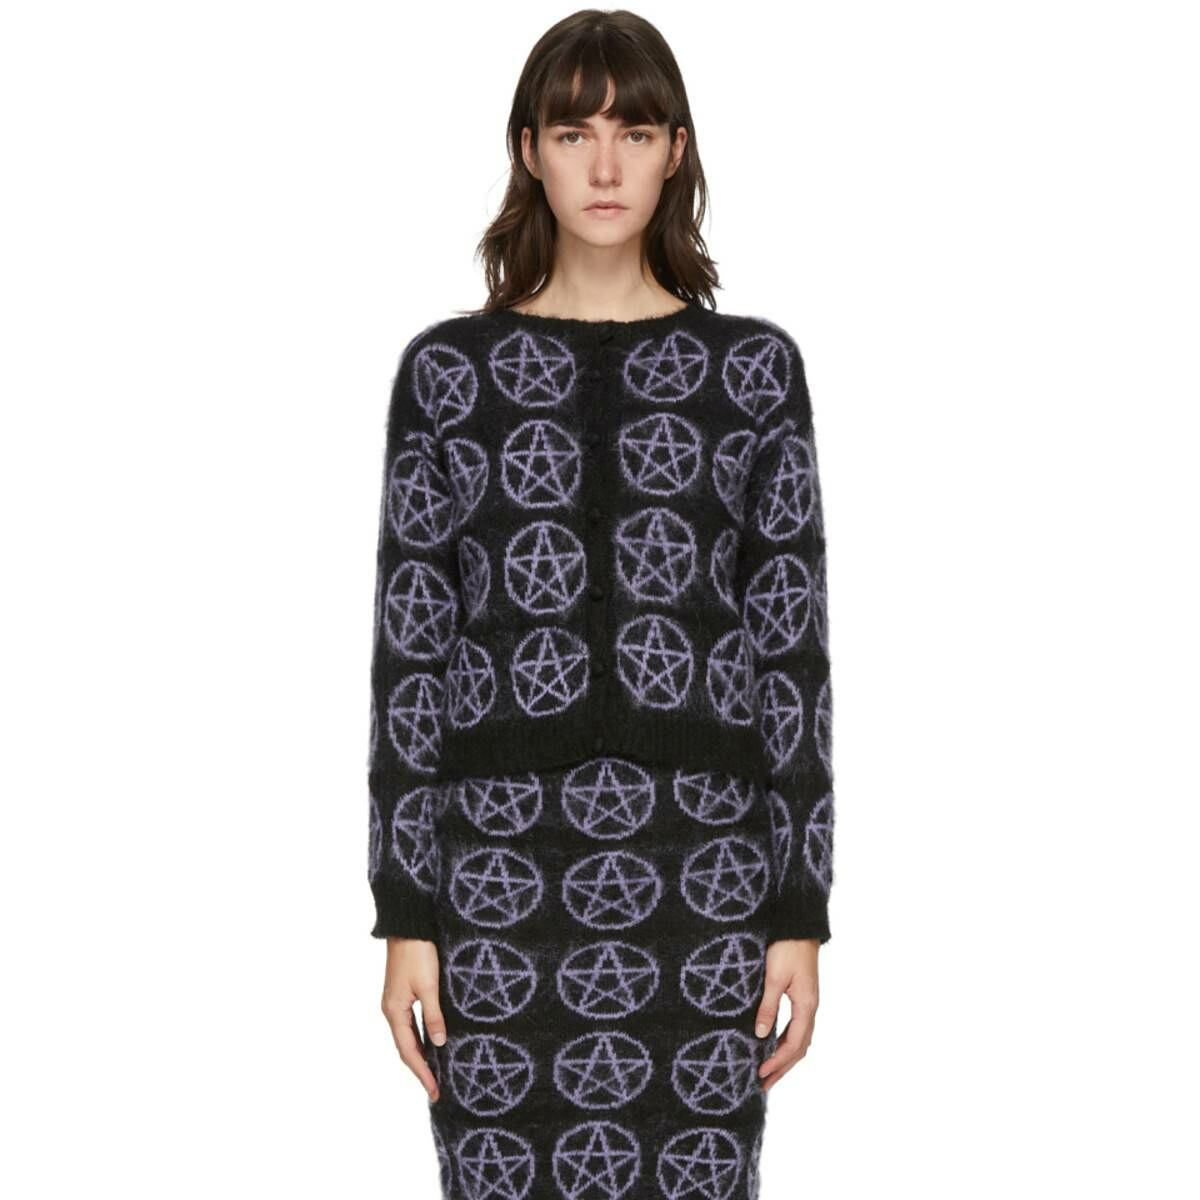 Ashley Williams Black and Purple Mohair Pentagram Cardigan Ssense USA WOMEN Women FASHION Womens KNITWEAR